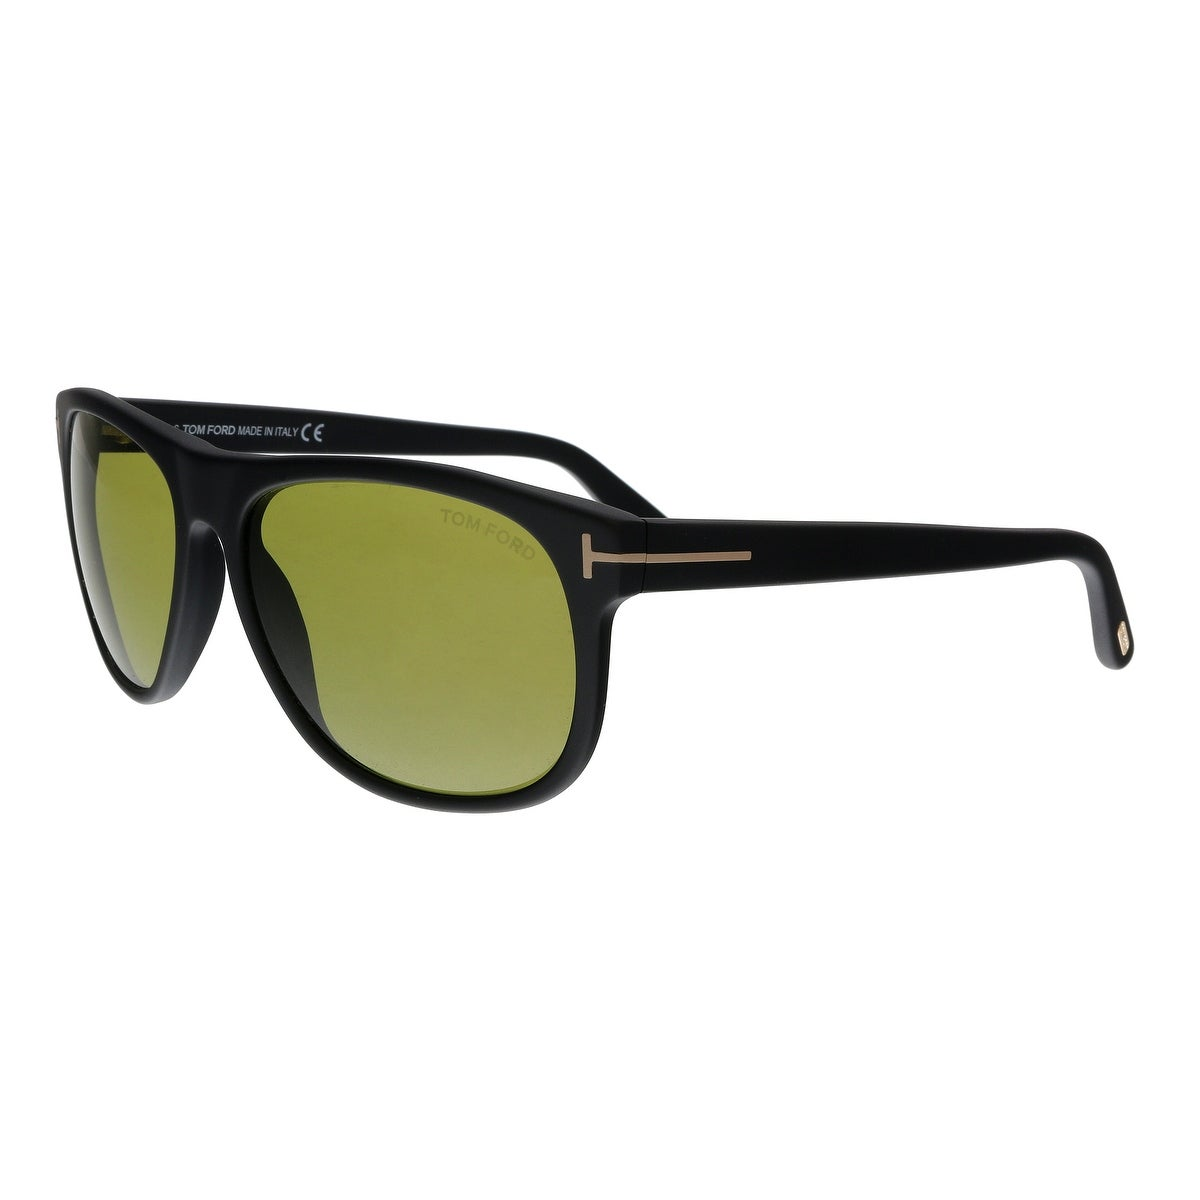 94b275f0c984 Tom Ford Men s Sunglasses